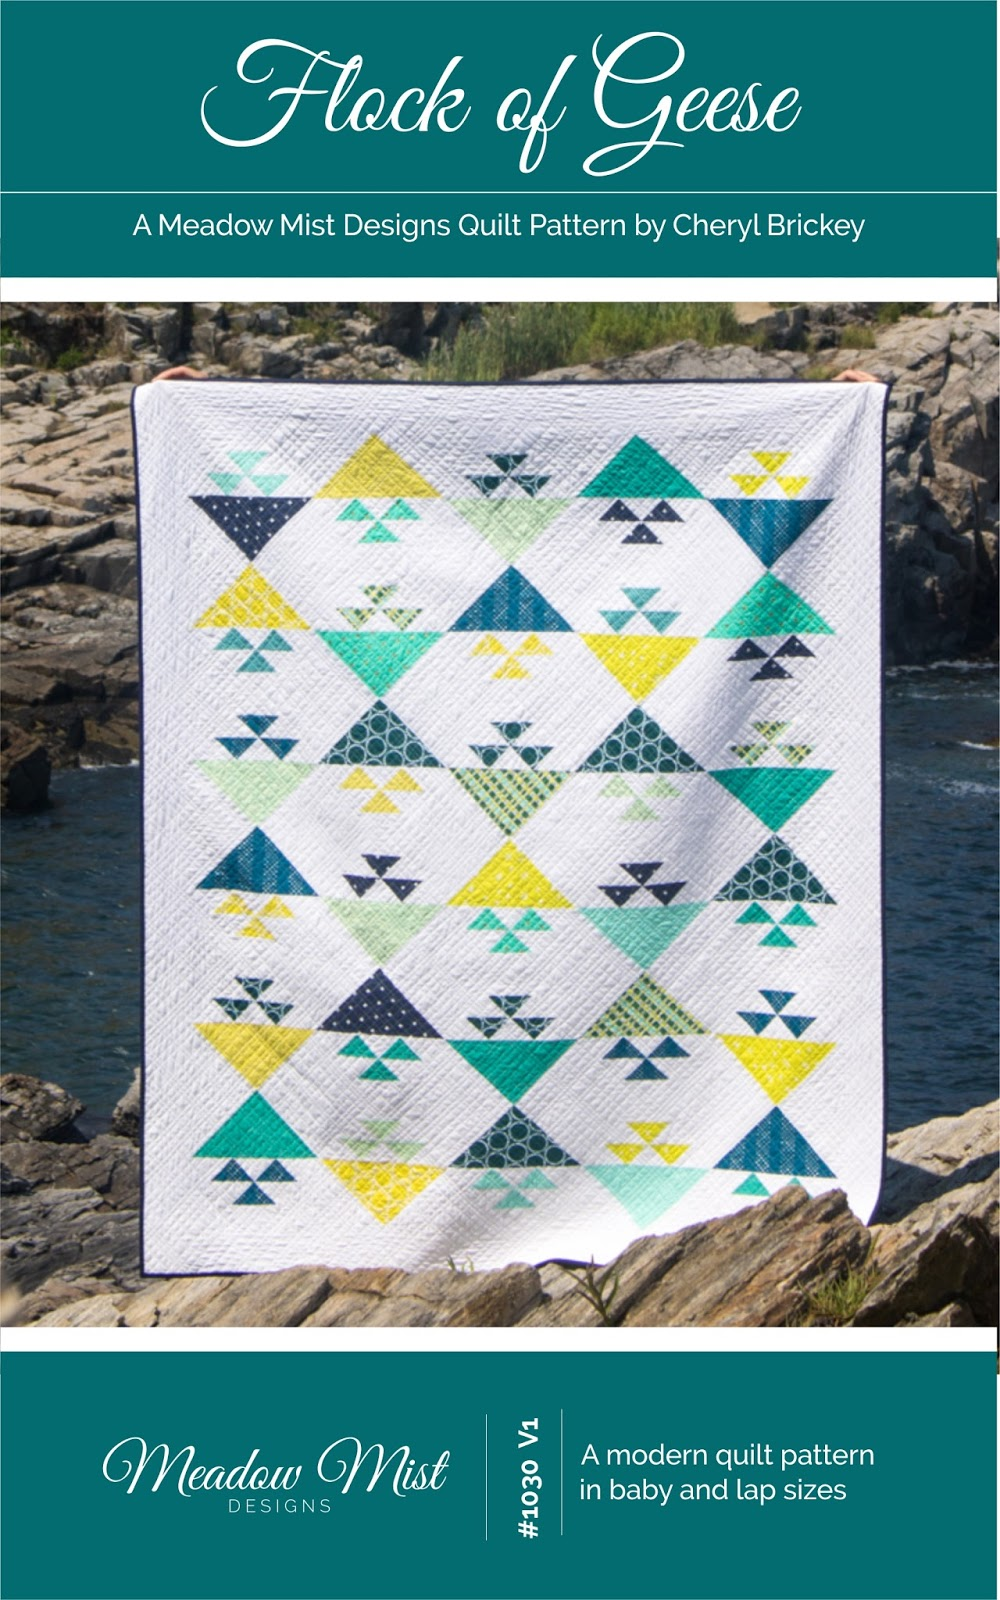 Flock of geese pattern release meadow mist designs bloglovin you can use coupon code twopatterns for 2 off two patterns or threepatterns 4 off 3 patterns in my etsy shop for even more savings fandeluxe Choice Image